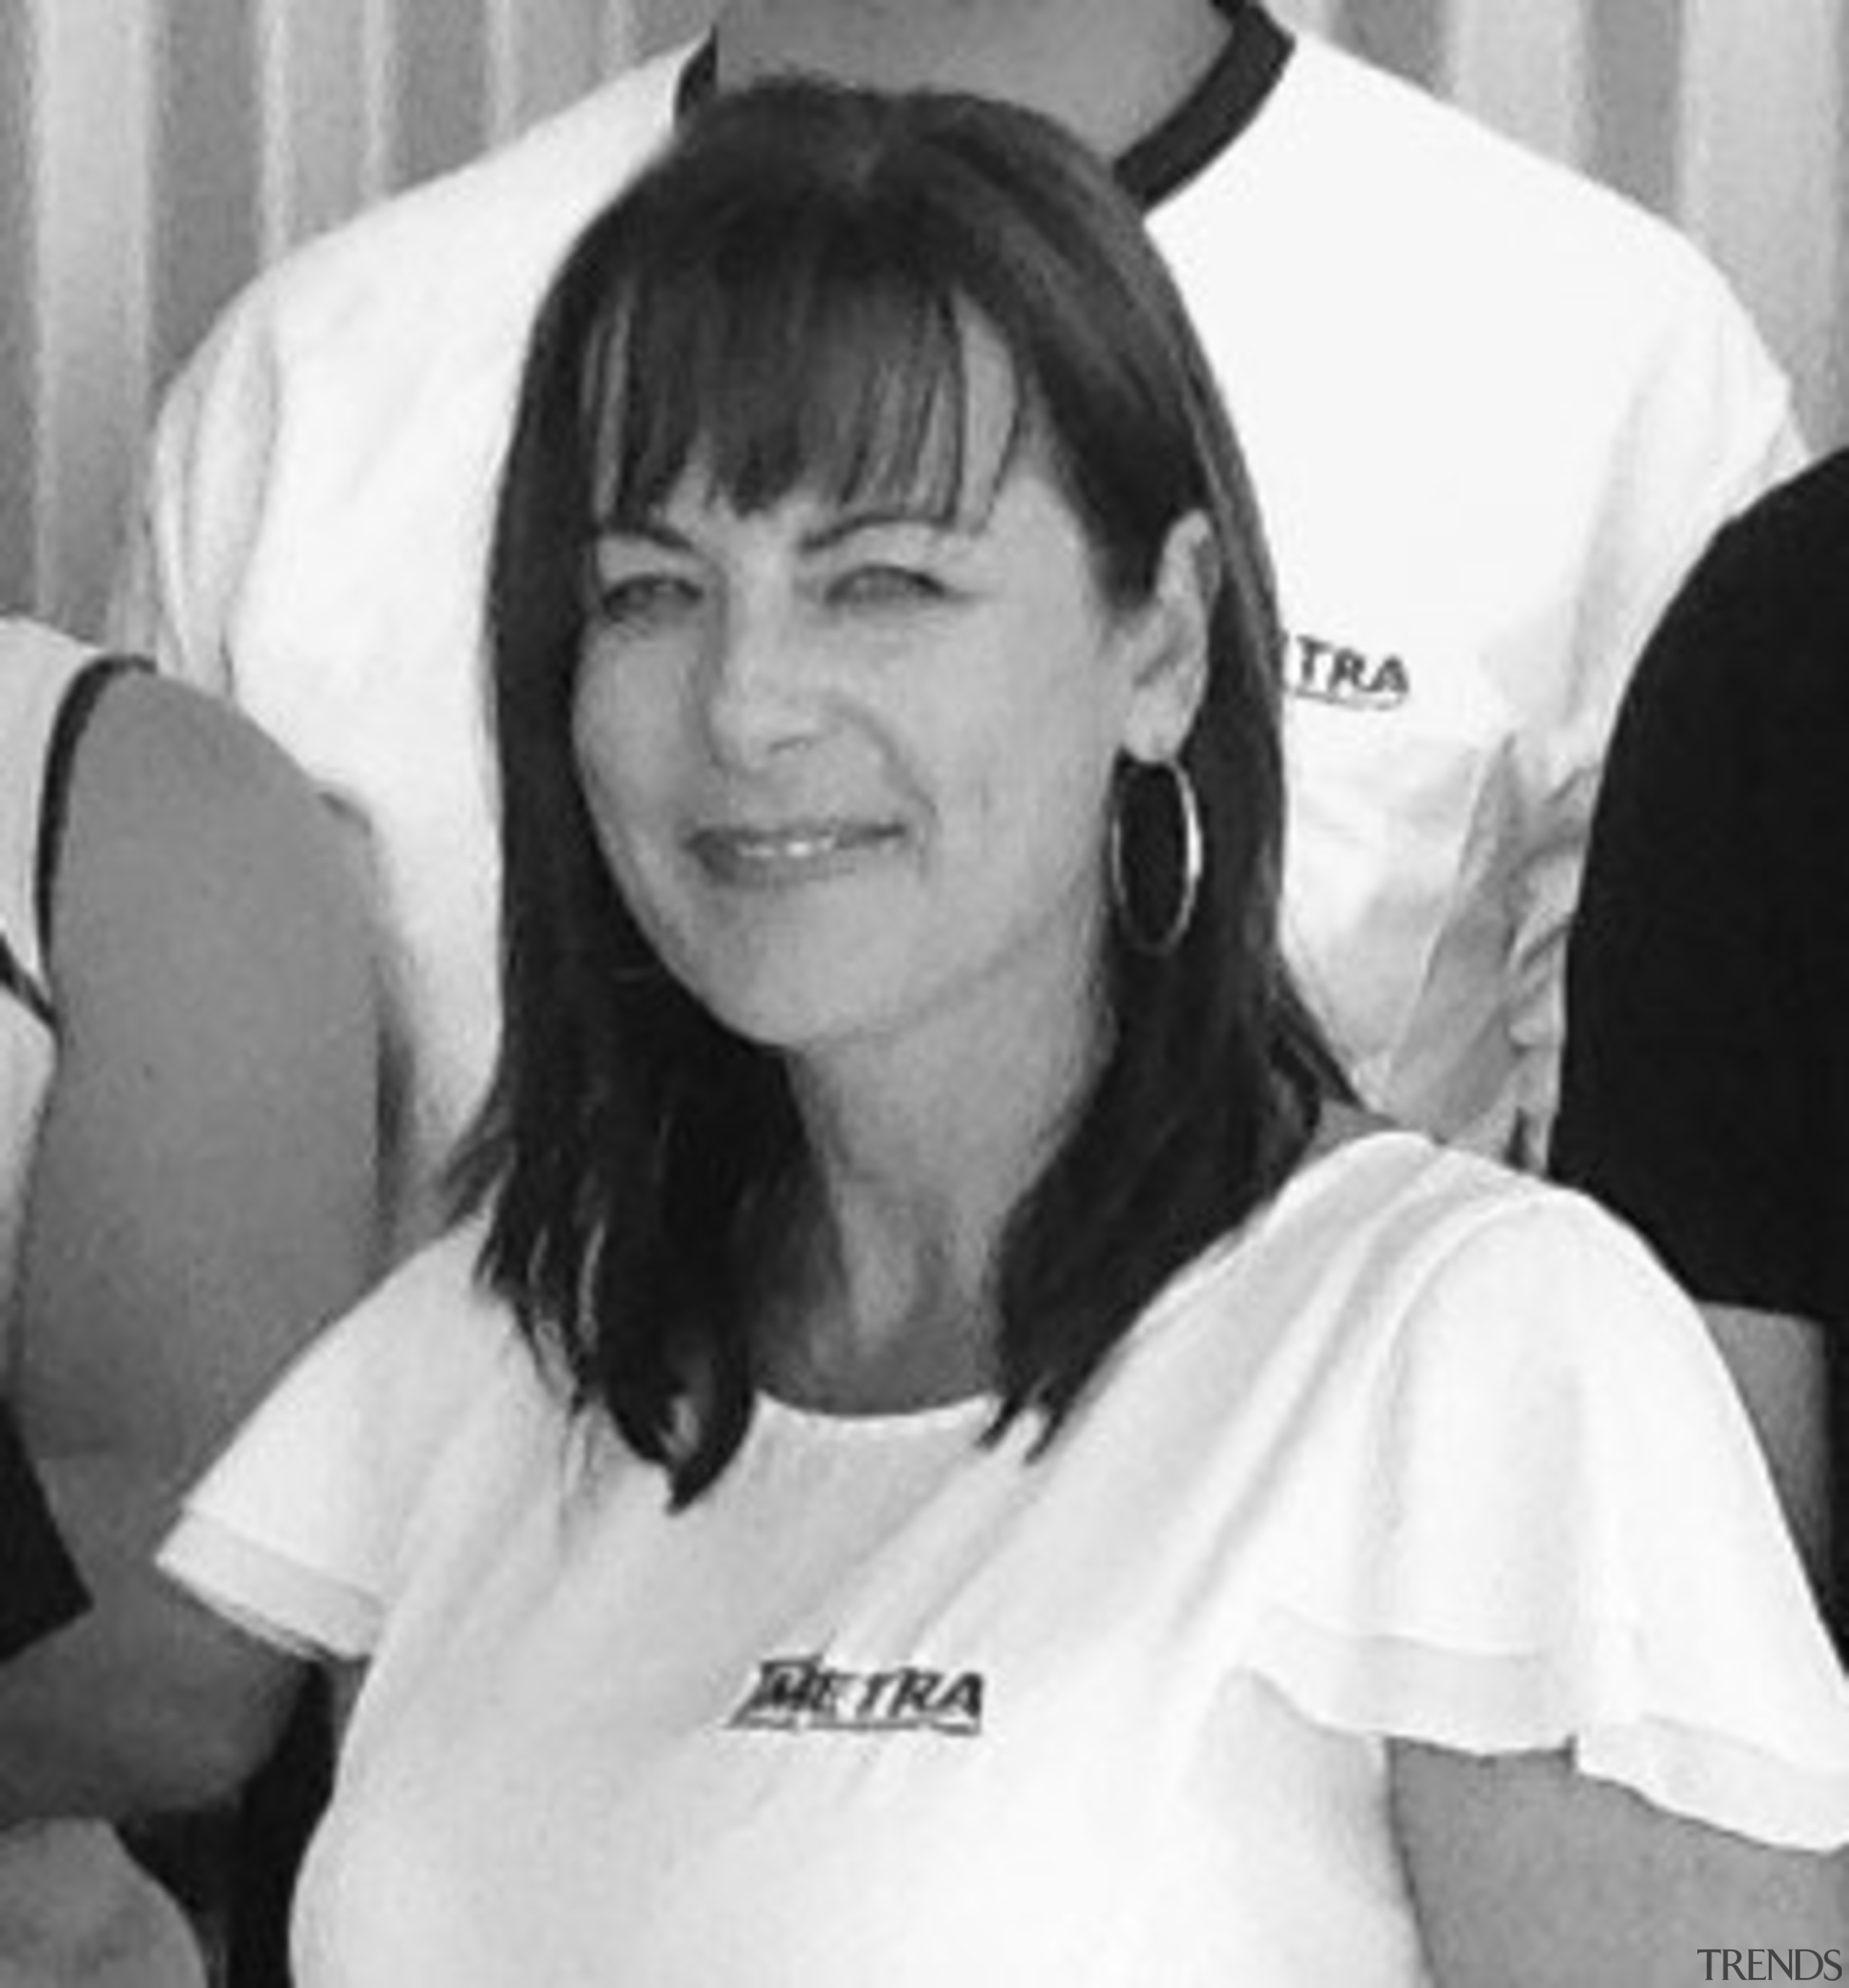 Metrapanel business manager Melissa Savage is an advocate black and white, black hair, chin, cool, ear, forehead, girl, hairstyle, monochrome, monochrome photography, mouth, neck, organ, person, product, smile, white, white